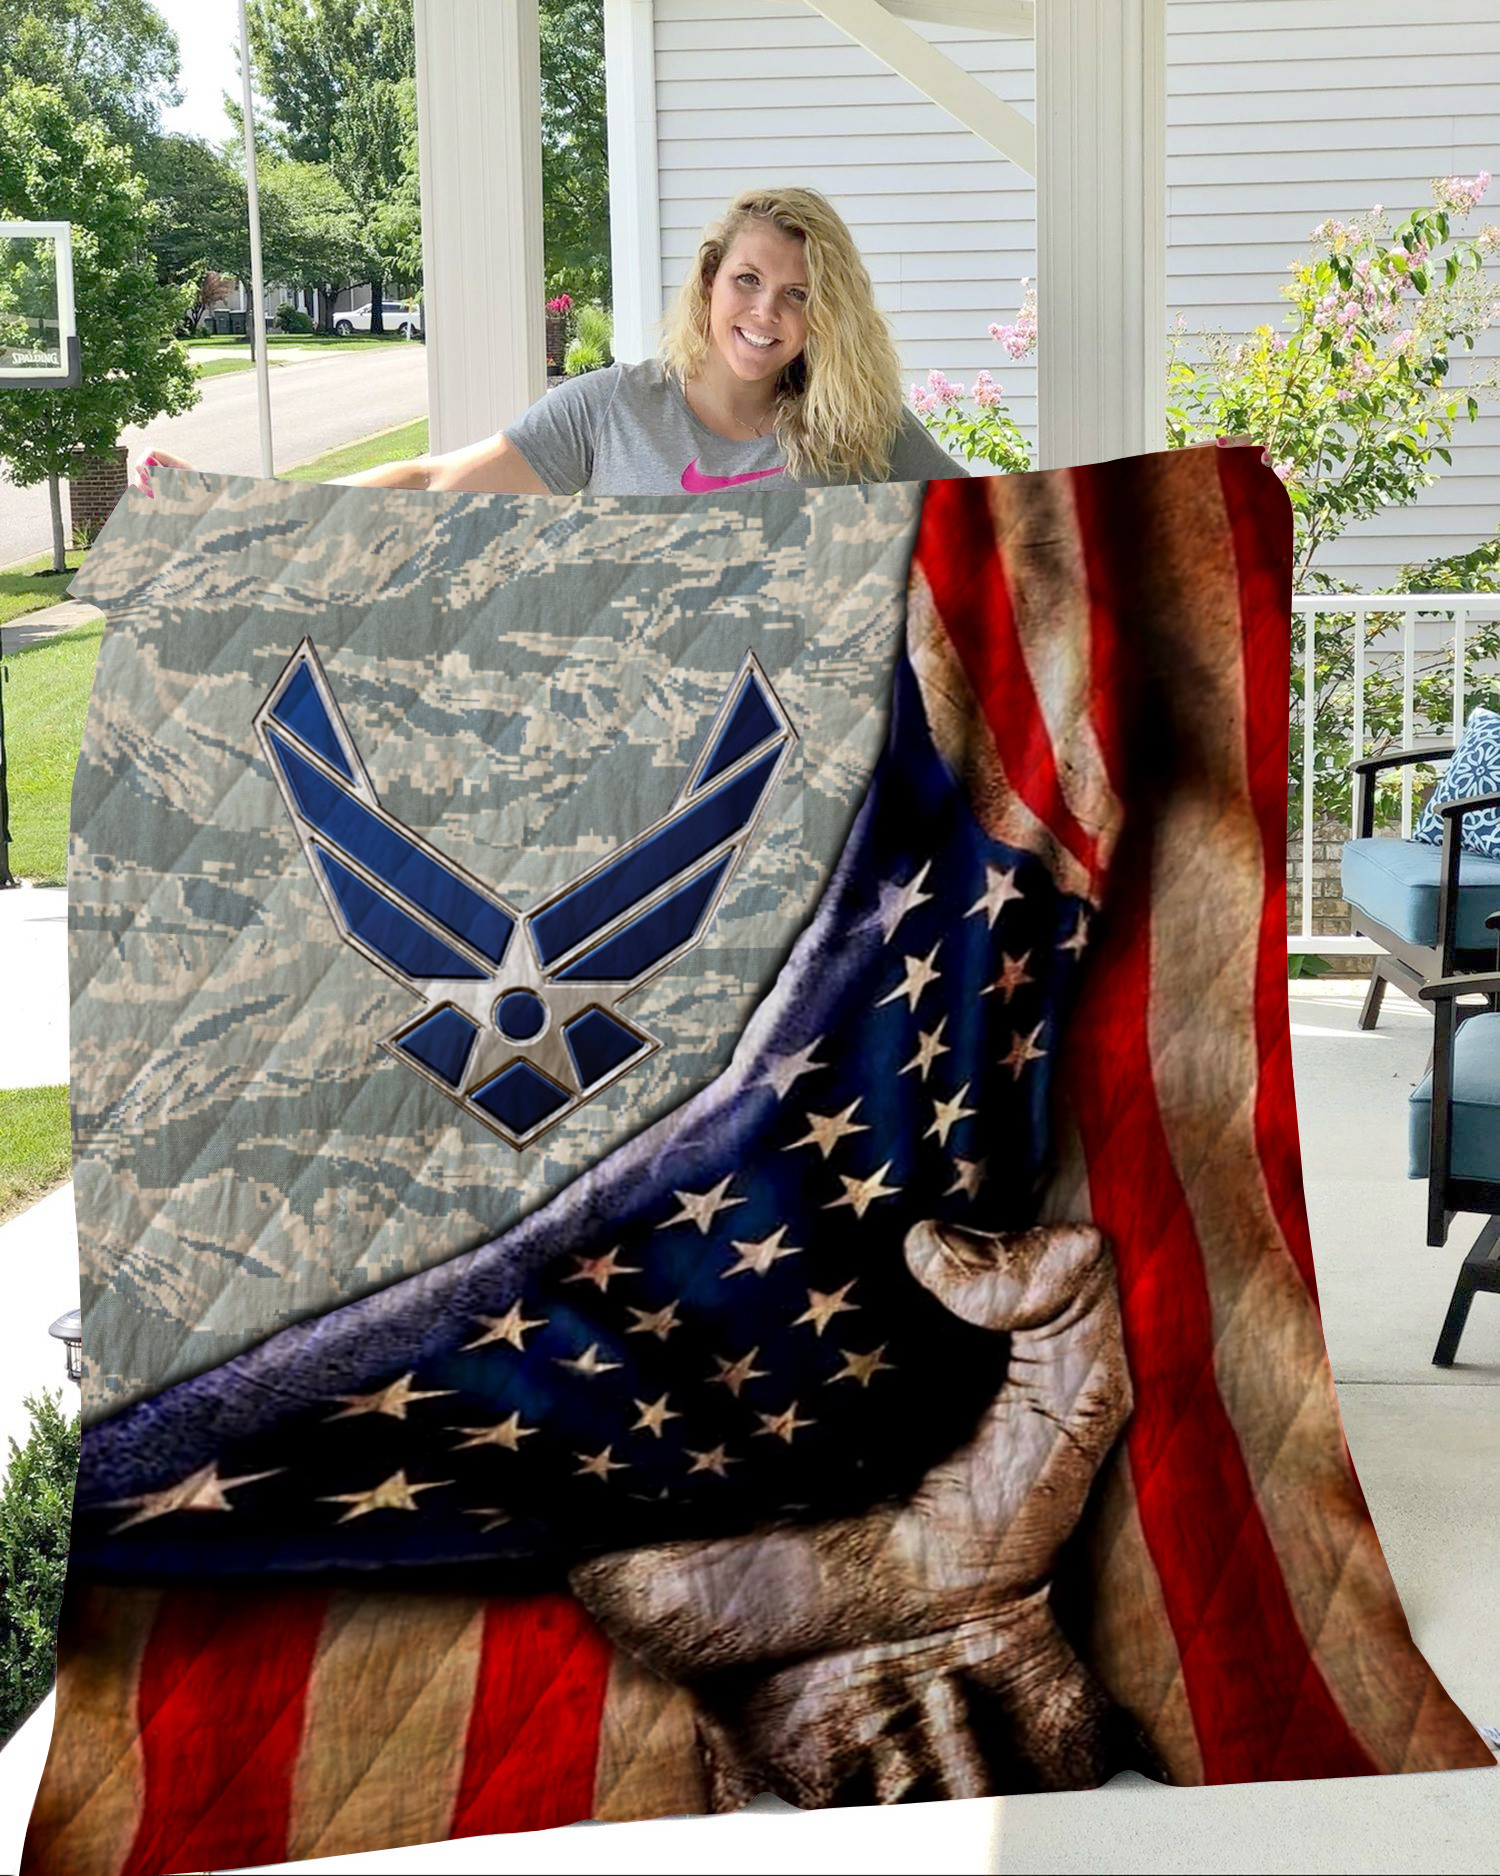 US air force all over printed quilt 1